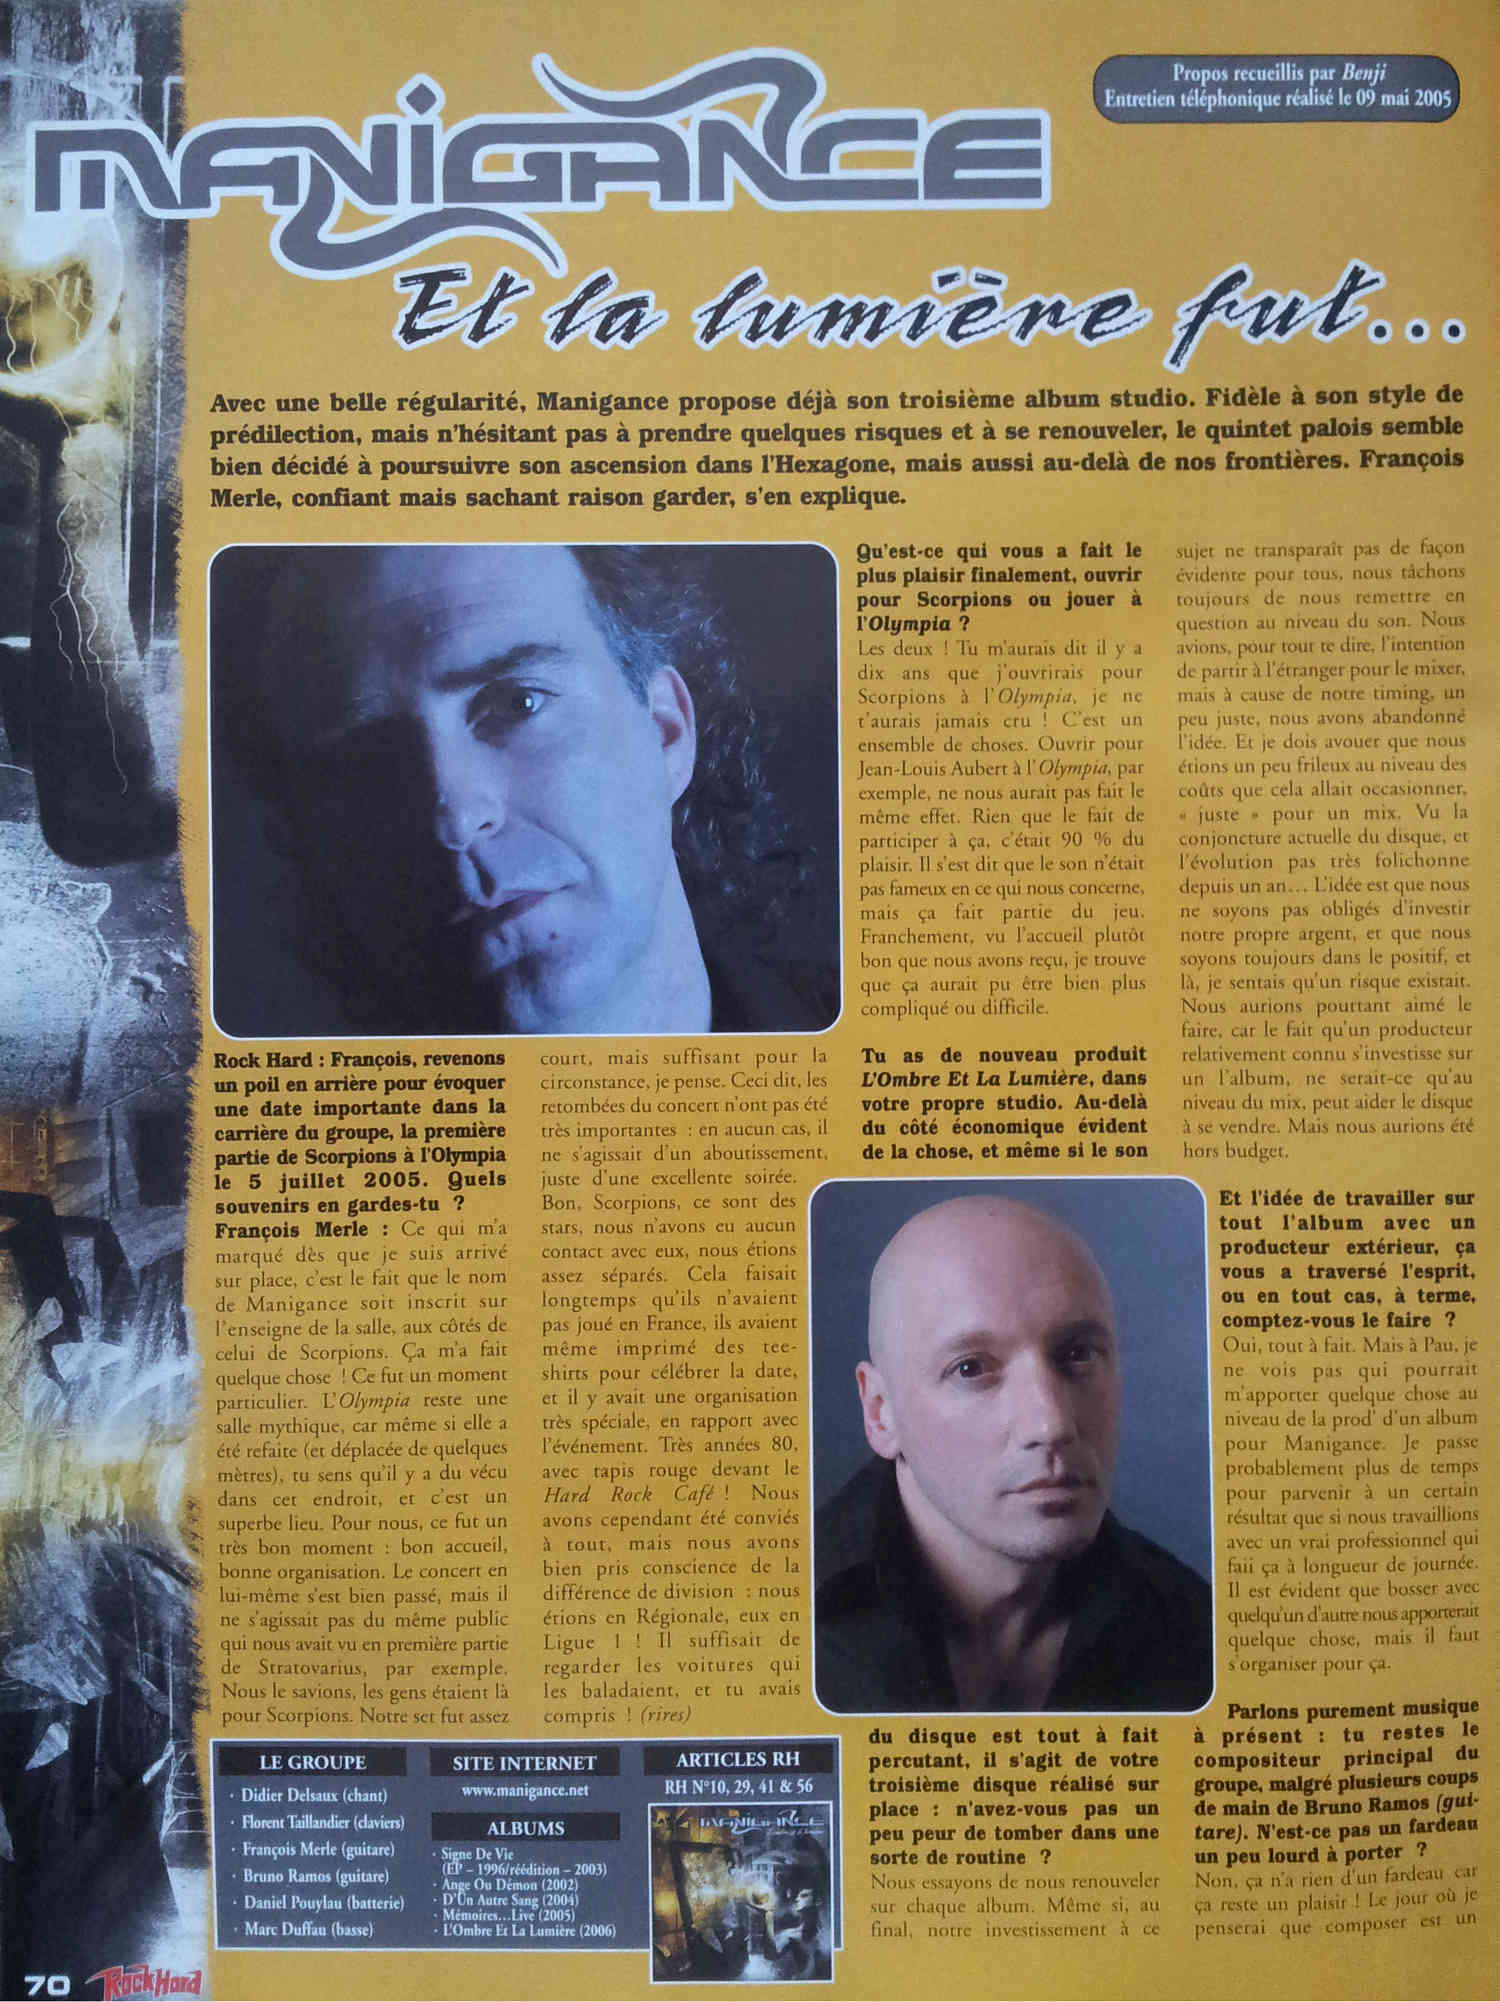 Interview MANIGANCE sur ROCK HARD n°56 JUIN 2006 (Archive) 239